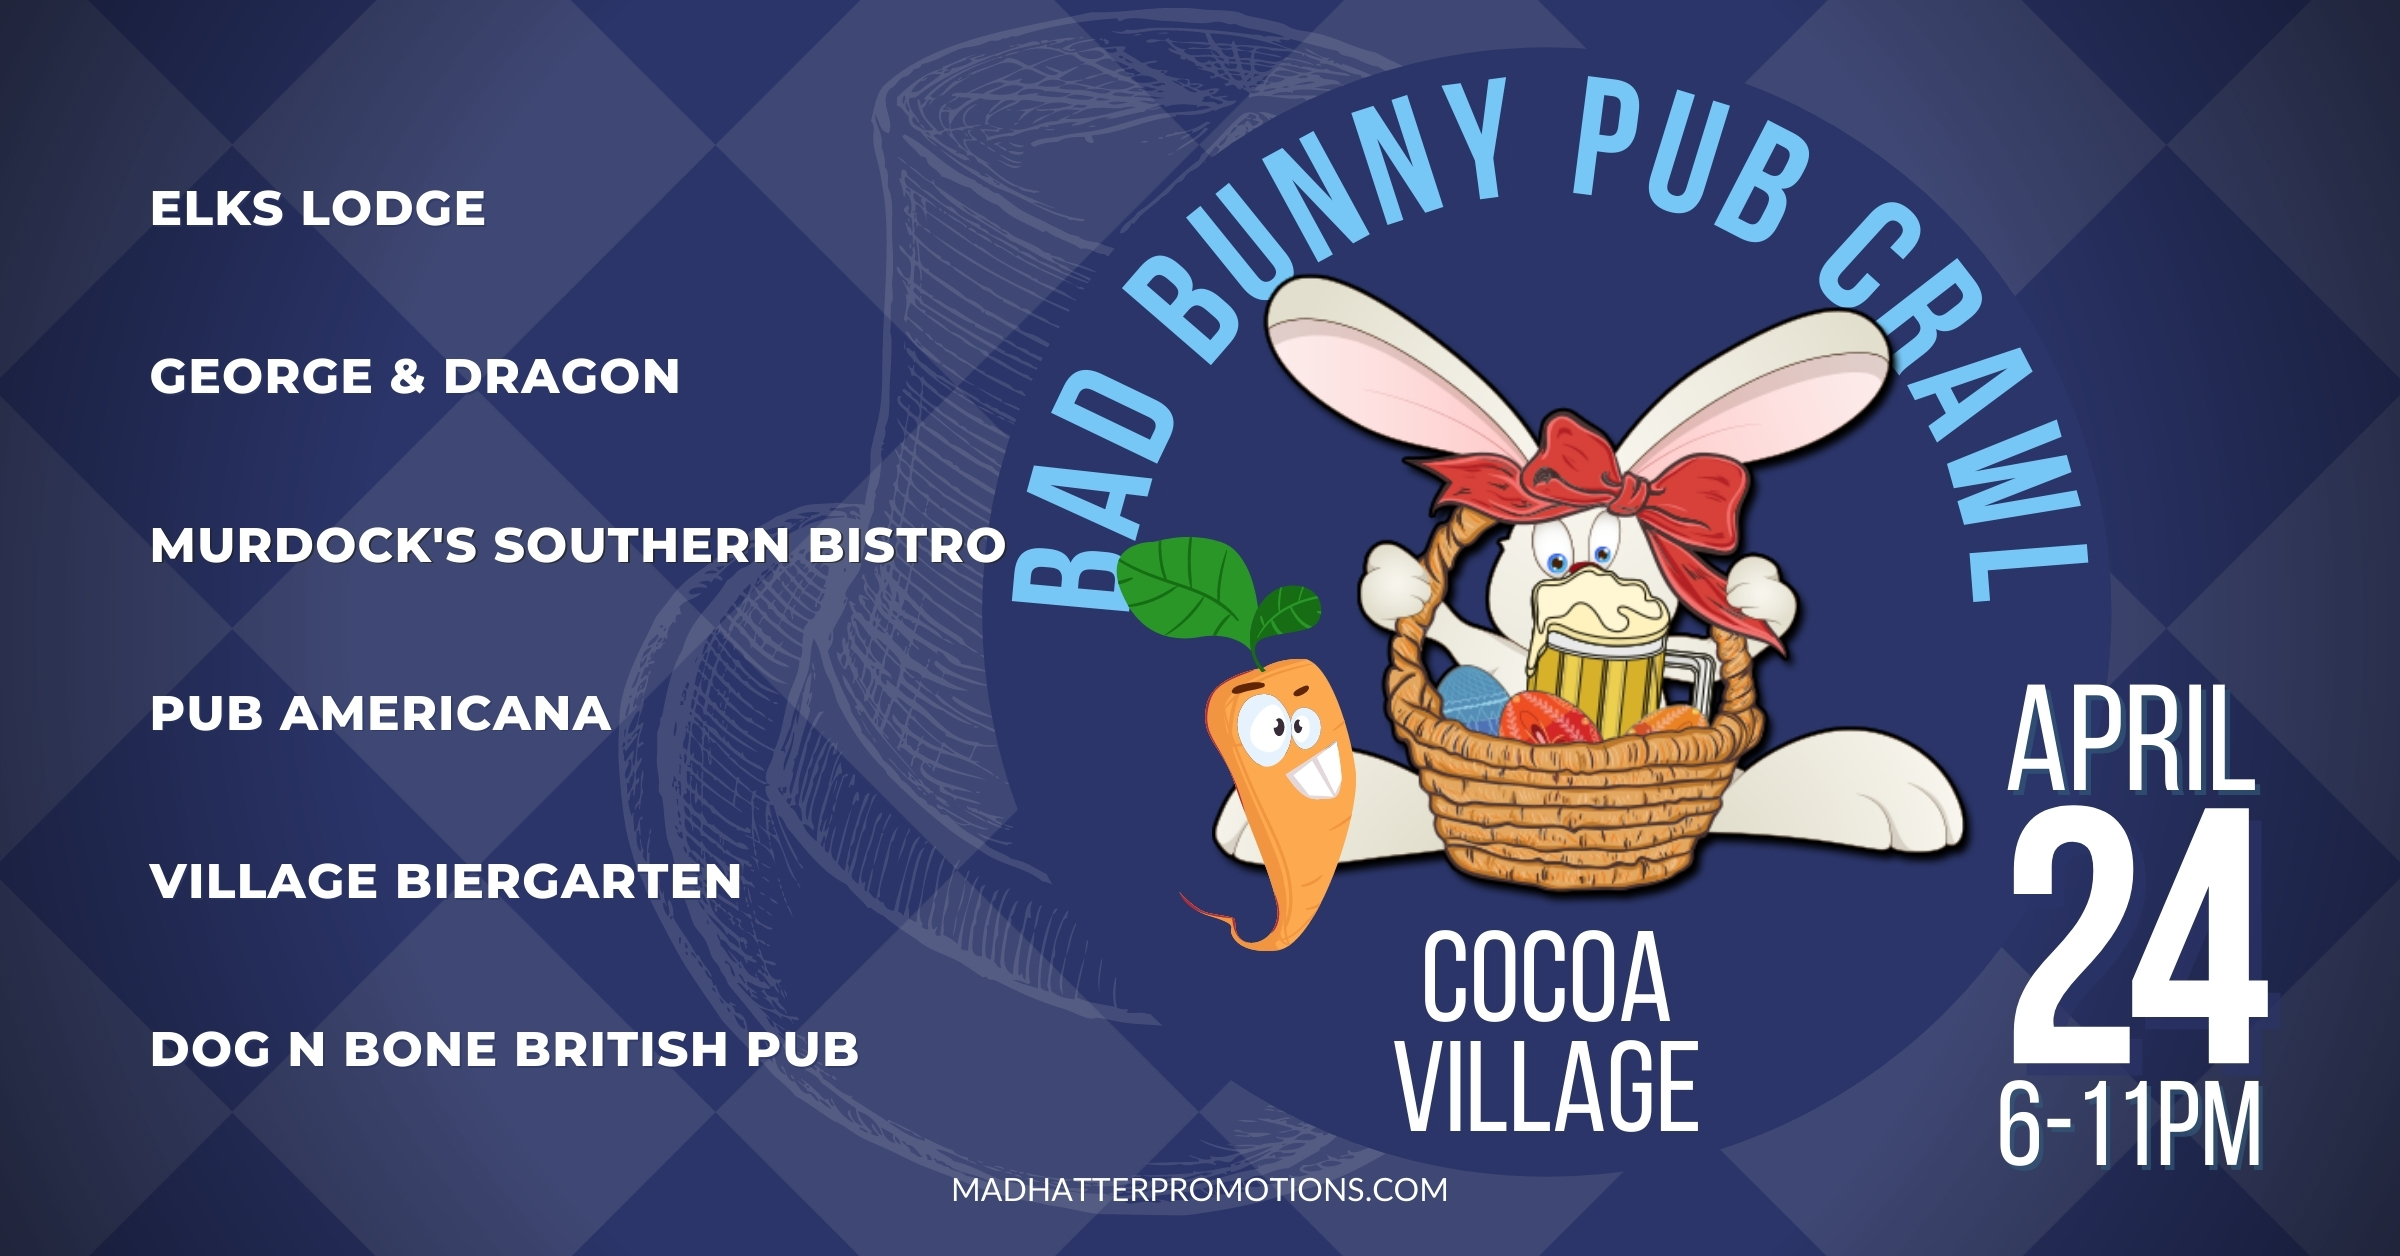 2021 Bad Bunny Easter Pub Crawl Cocoa Village Saturday April 24 6:00pm to Midnight